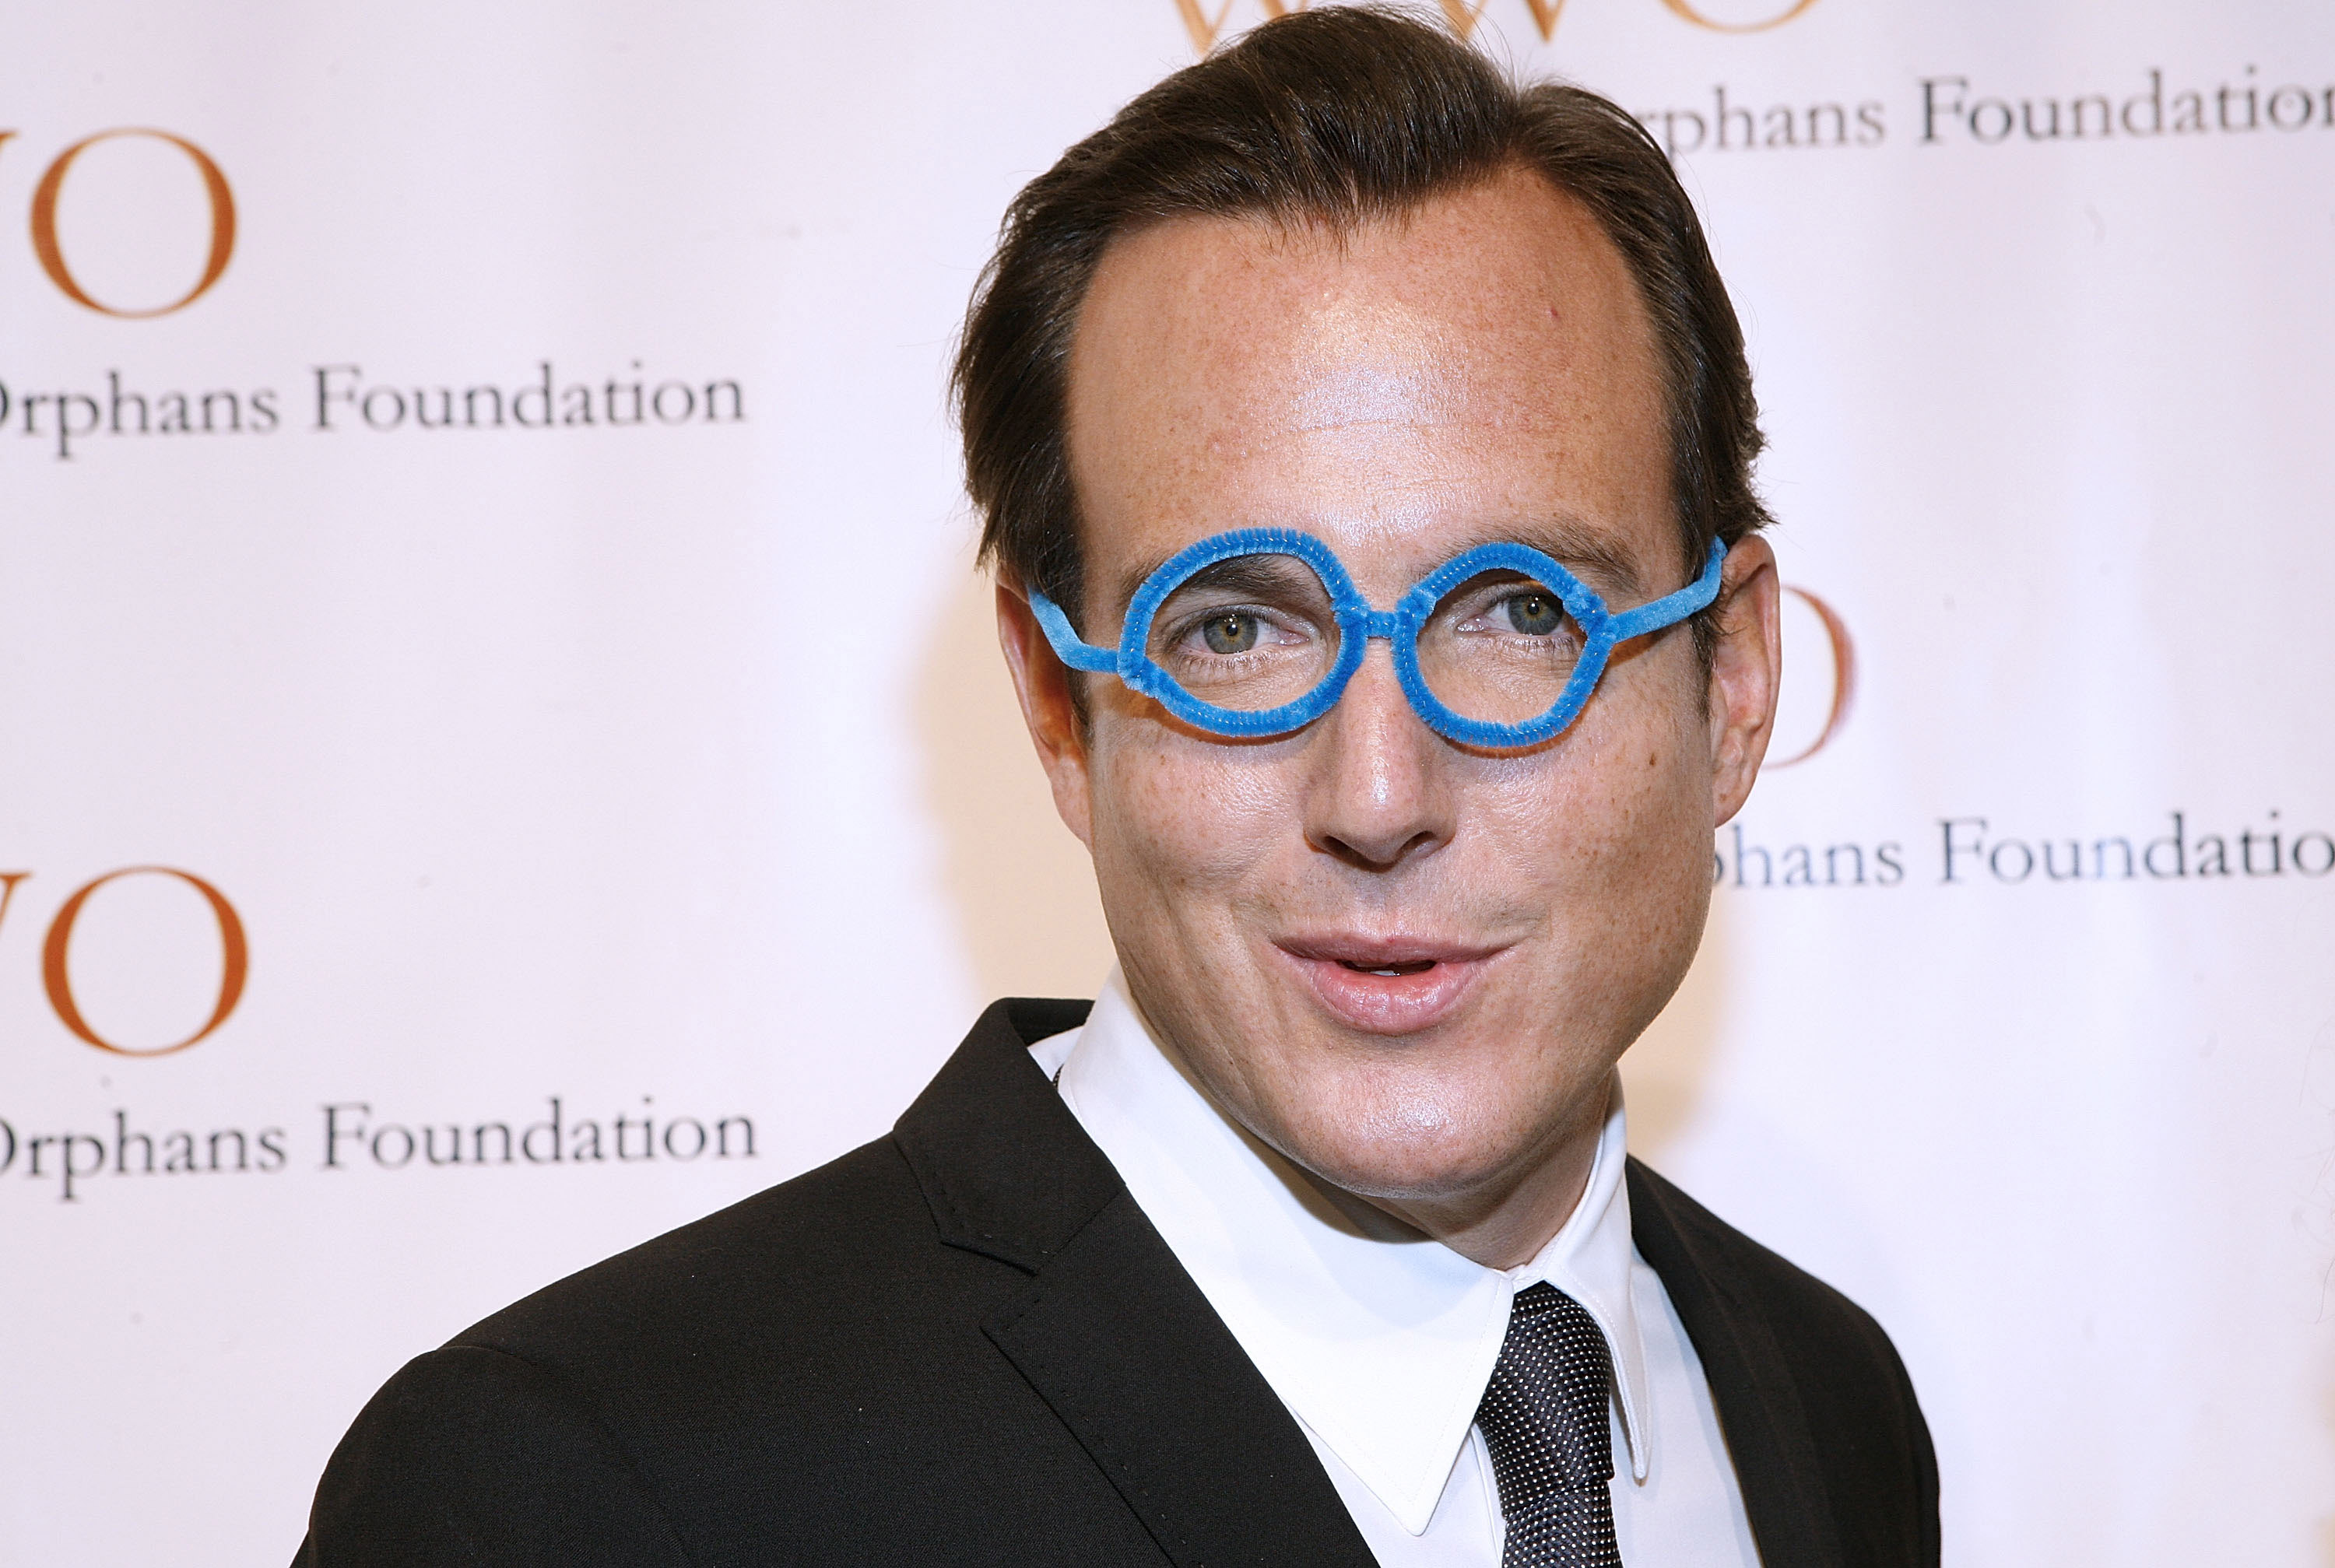 will arnett kinopoiskwill arnett height, will arnett megan fox, will arnett 30 rock, will arnett twitter, will arnett wdw, will arnett arrested development, will arnett marvel, will arnett the office, will arnett wiki, will arnett parks and rec, will arnett singing, will arnett aaron paul, will arnett conan o'brien, will arnett tumblr, will arnett kinopoisk, will arnett batman, will arnett lego batman movie, will arnett matt damon, will arnett instagram, will arnett parks and recreation